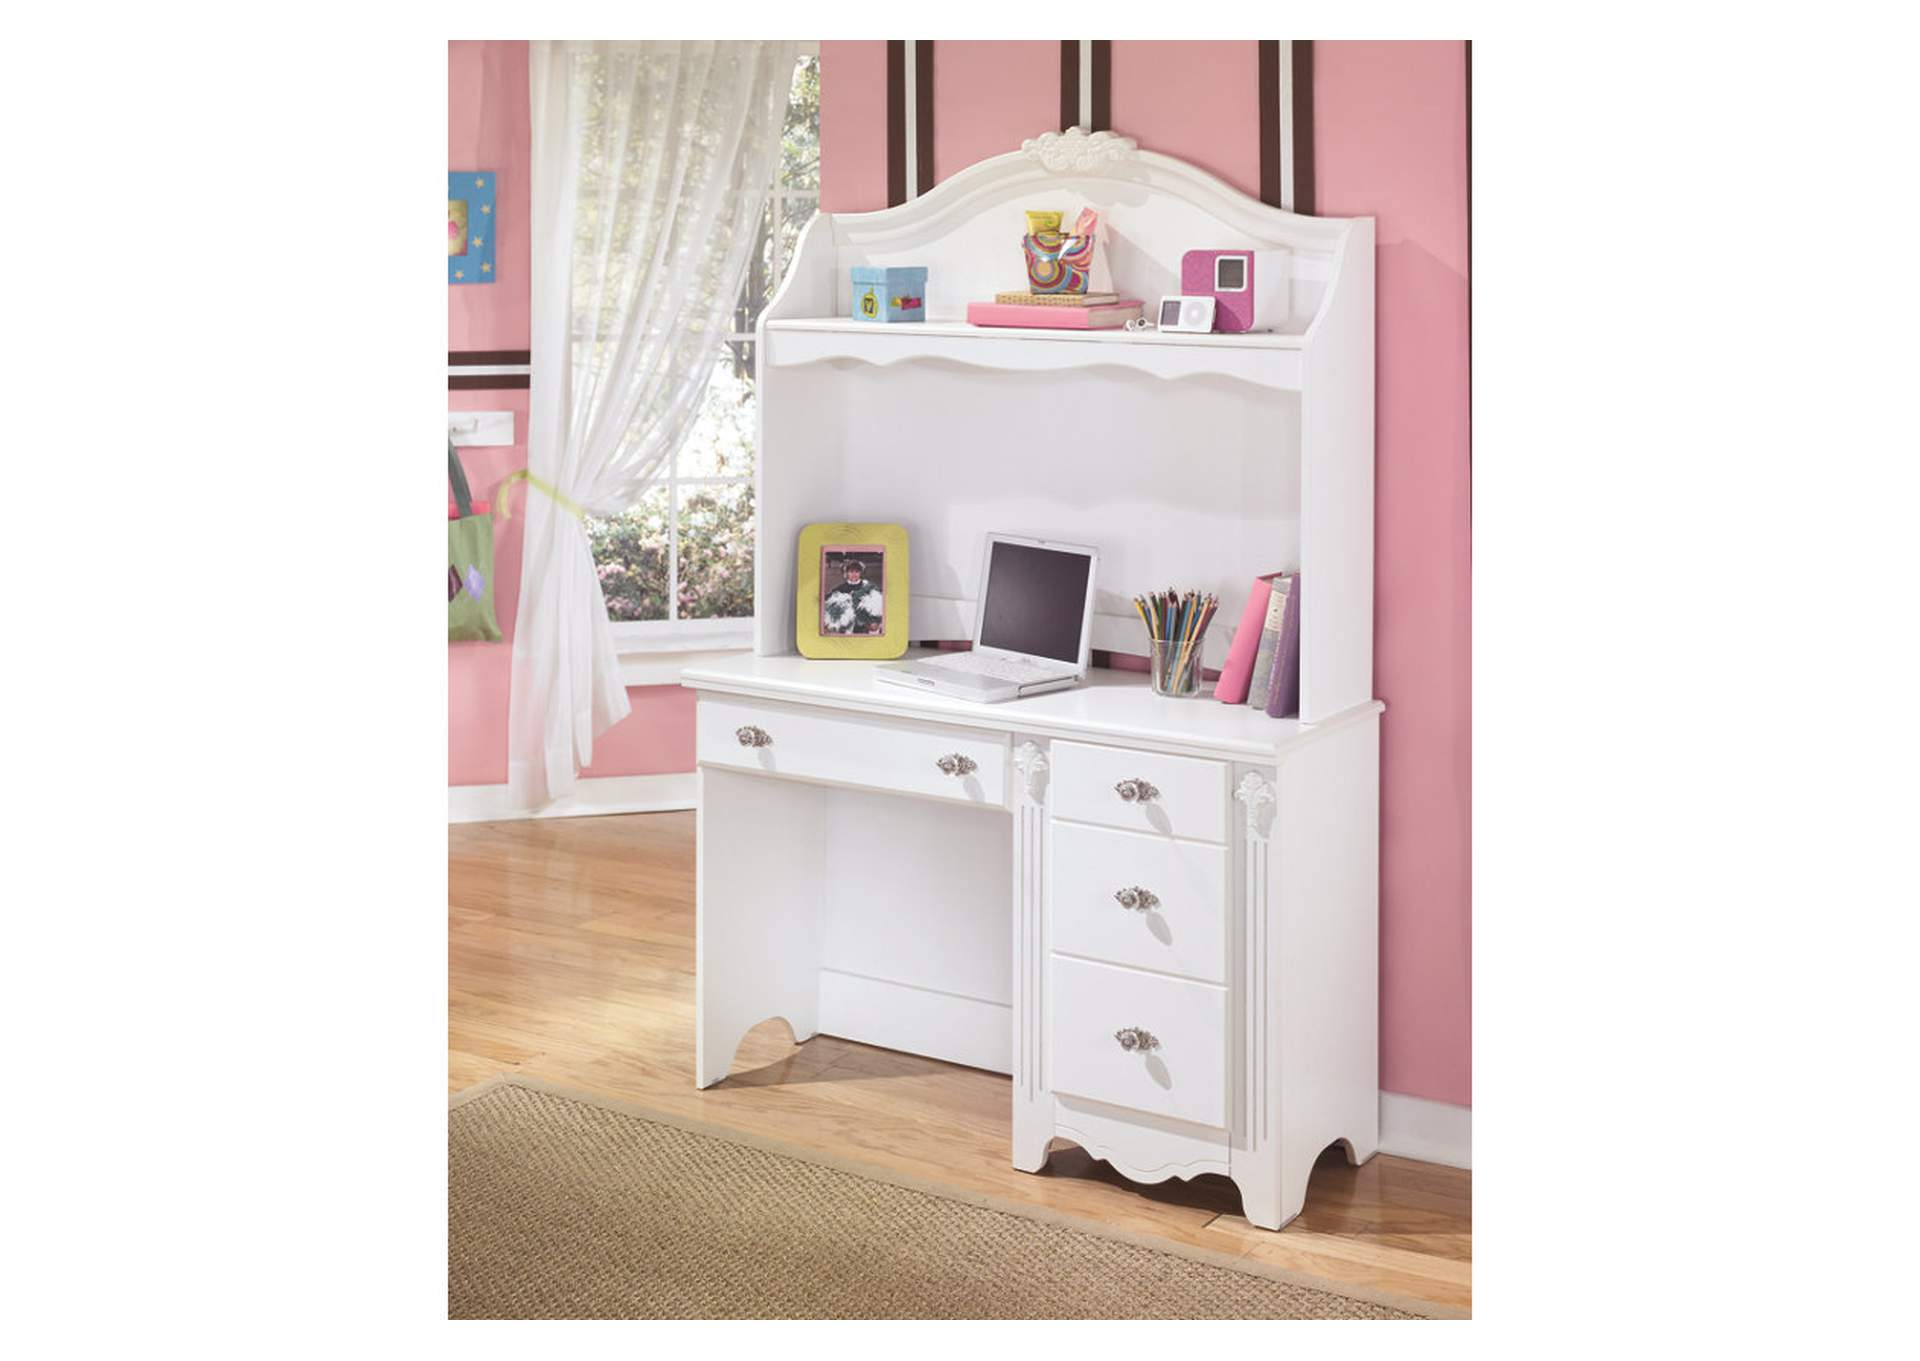 Exquisite Bedroom Desk Hutch,Signature Design By Ashley